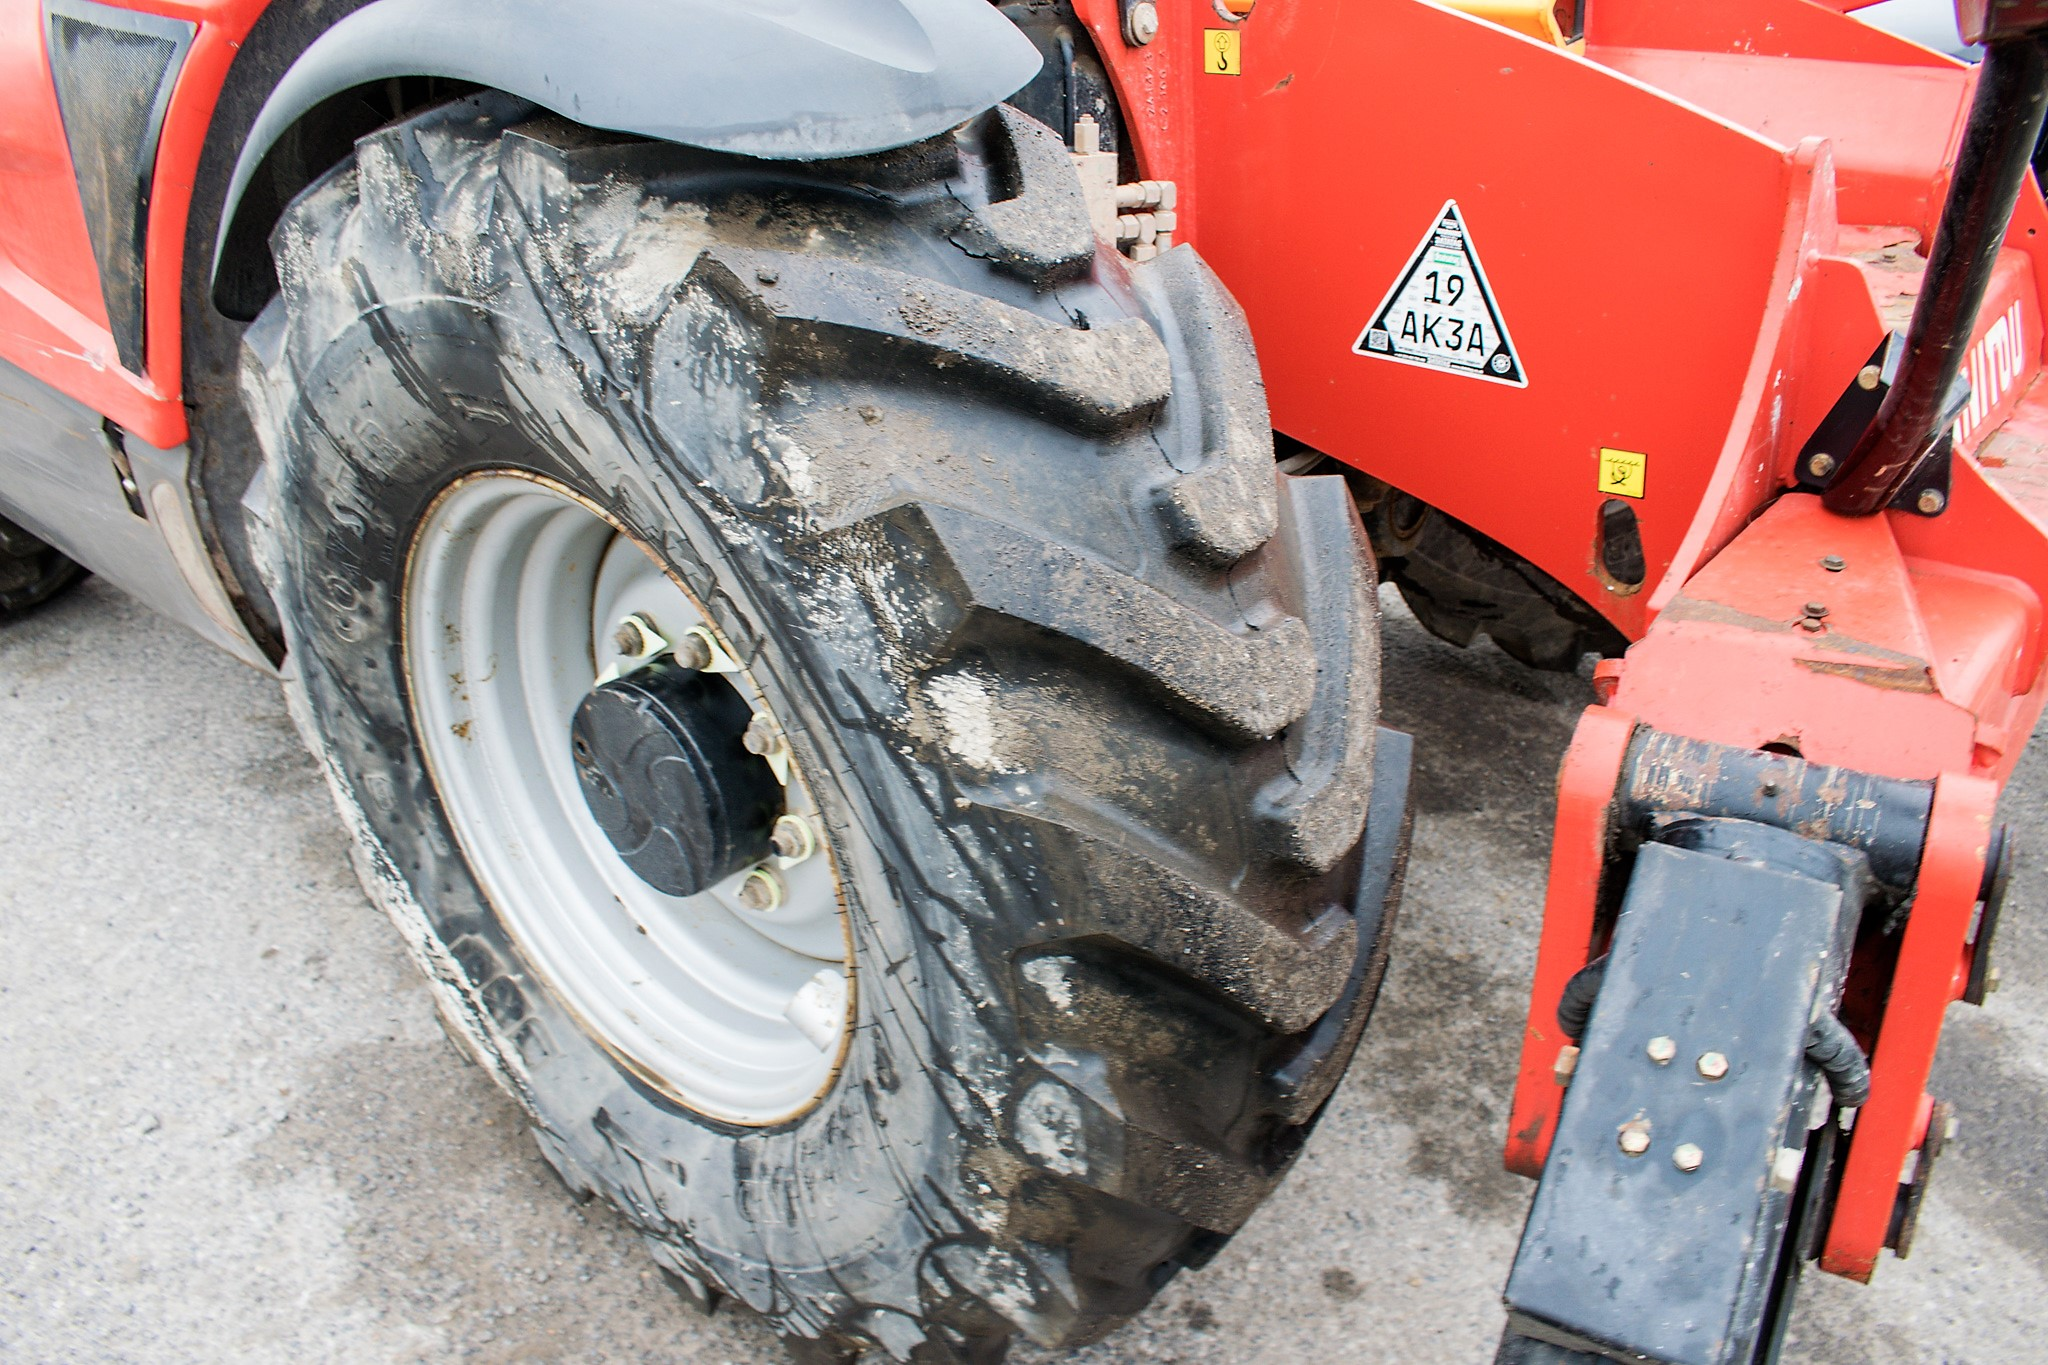 Manitou MT1840 18 metre telescopic handler Year: 2014 S/N: 942628 Recorded Hours: 4160 c/w sway - Image 13 of 22